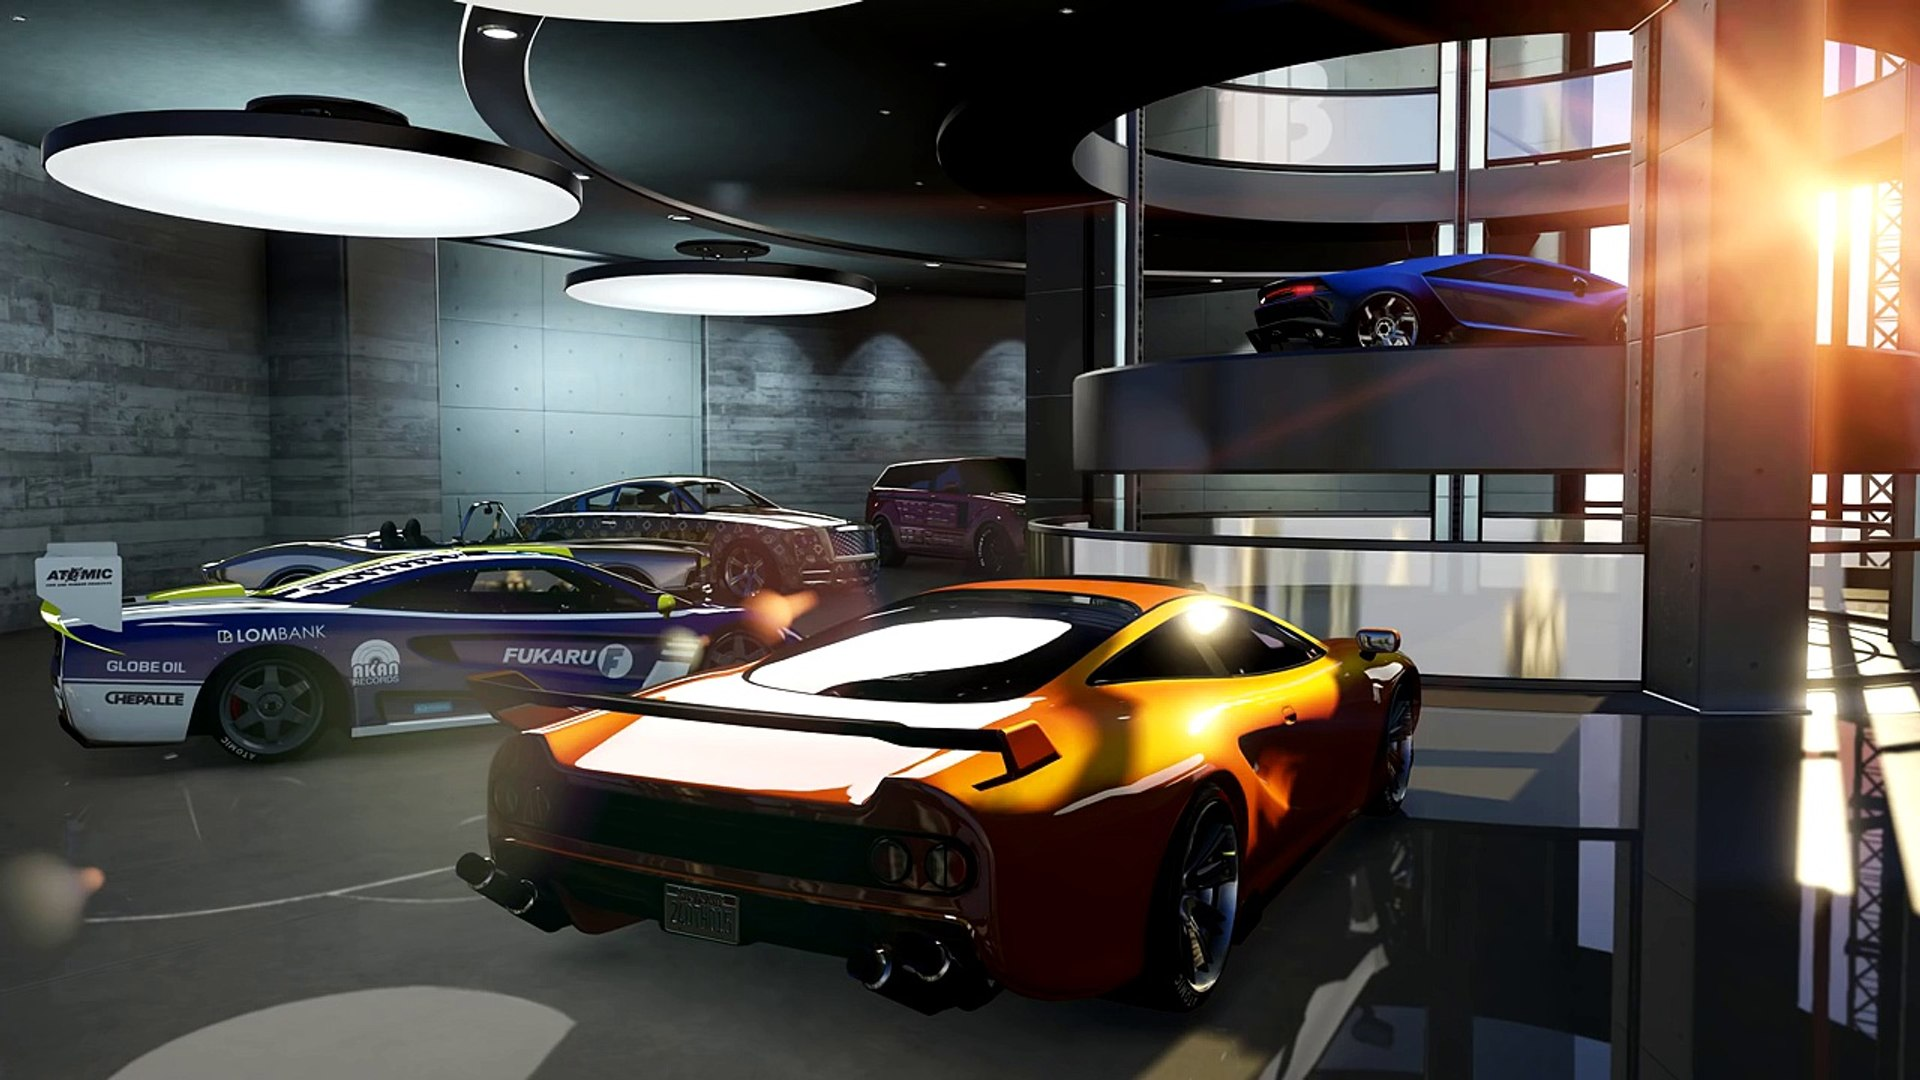 GTA 5 ONLINE - STORE PEGASUS VEHICLES IN GARAGES & CUSTOMIZE THEM IN NEW  IMPORT & EXPORT DLC UPDATE!